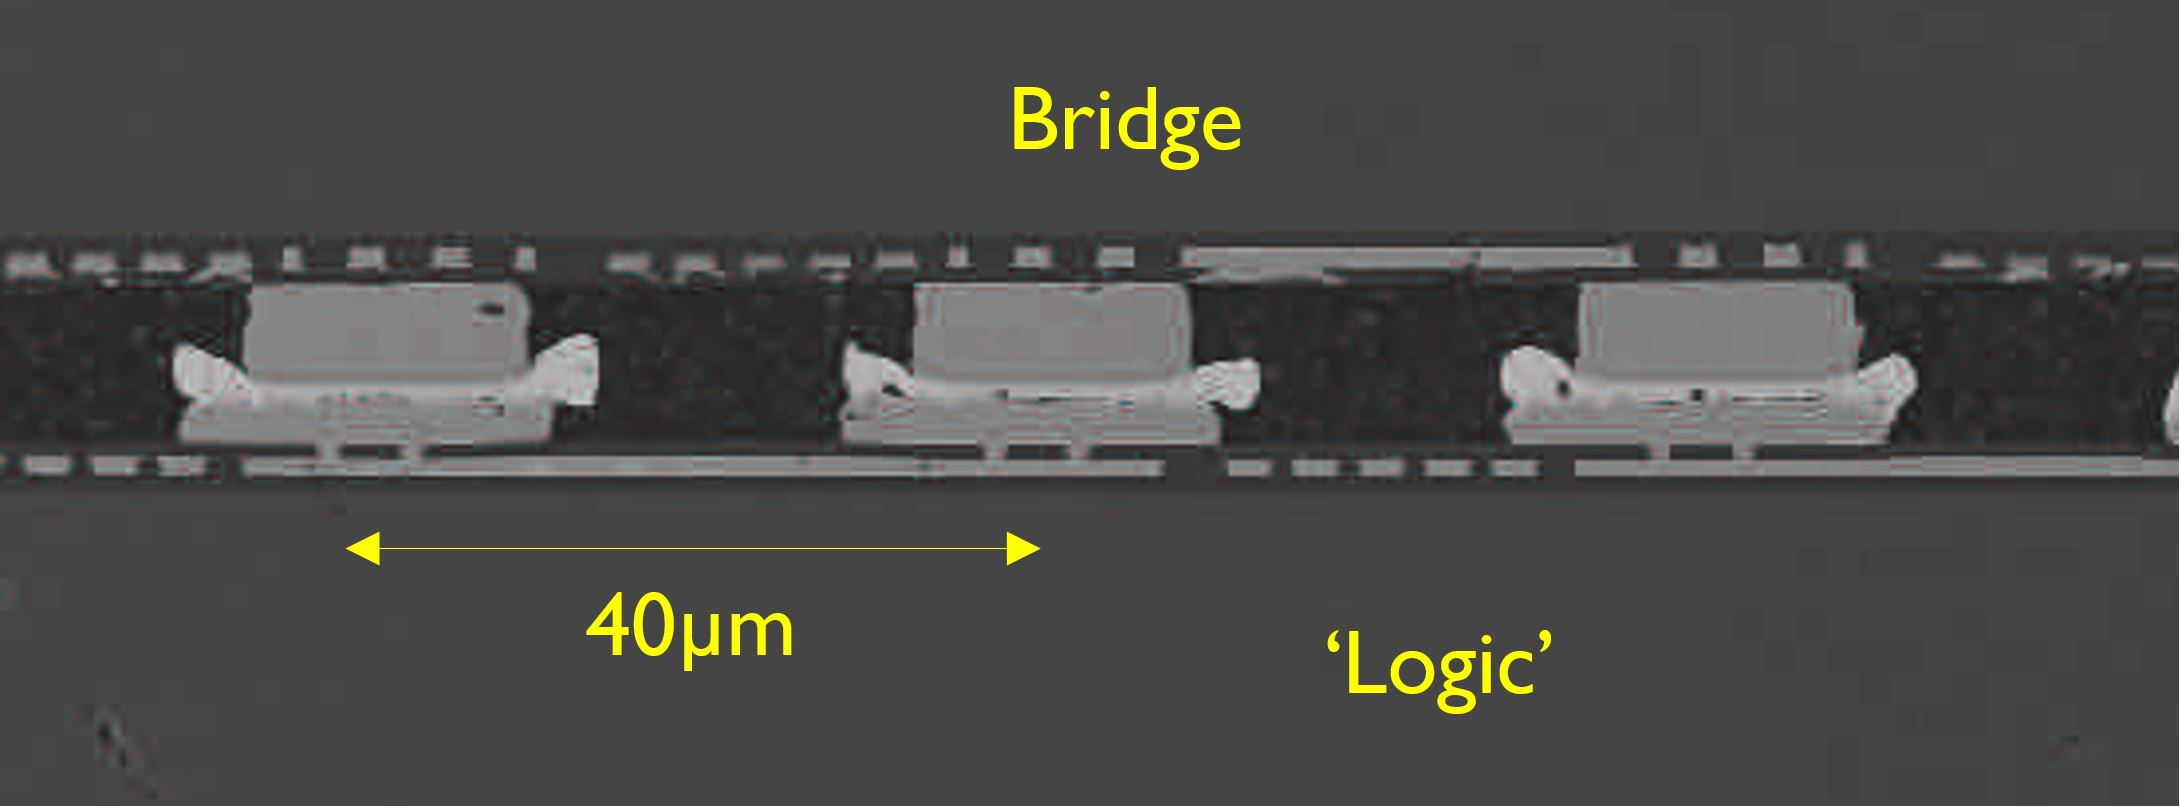 Illustration of the successful bridge-to-logic bonding at 40µm pitch, compatible with 20µm pitch microbump assembly.